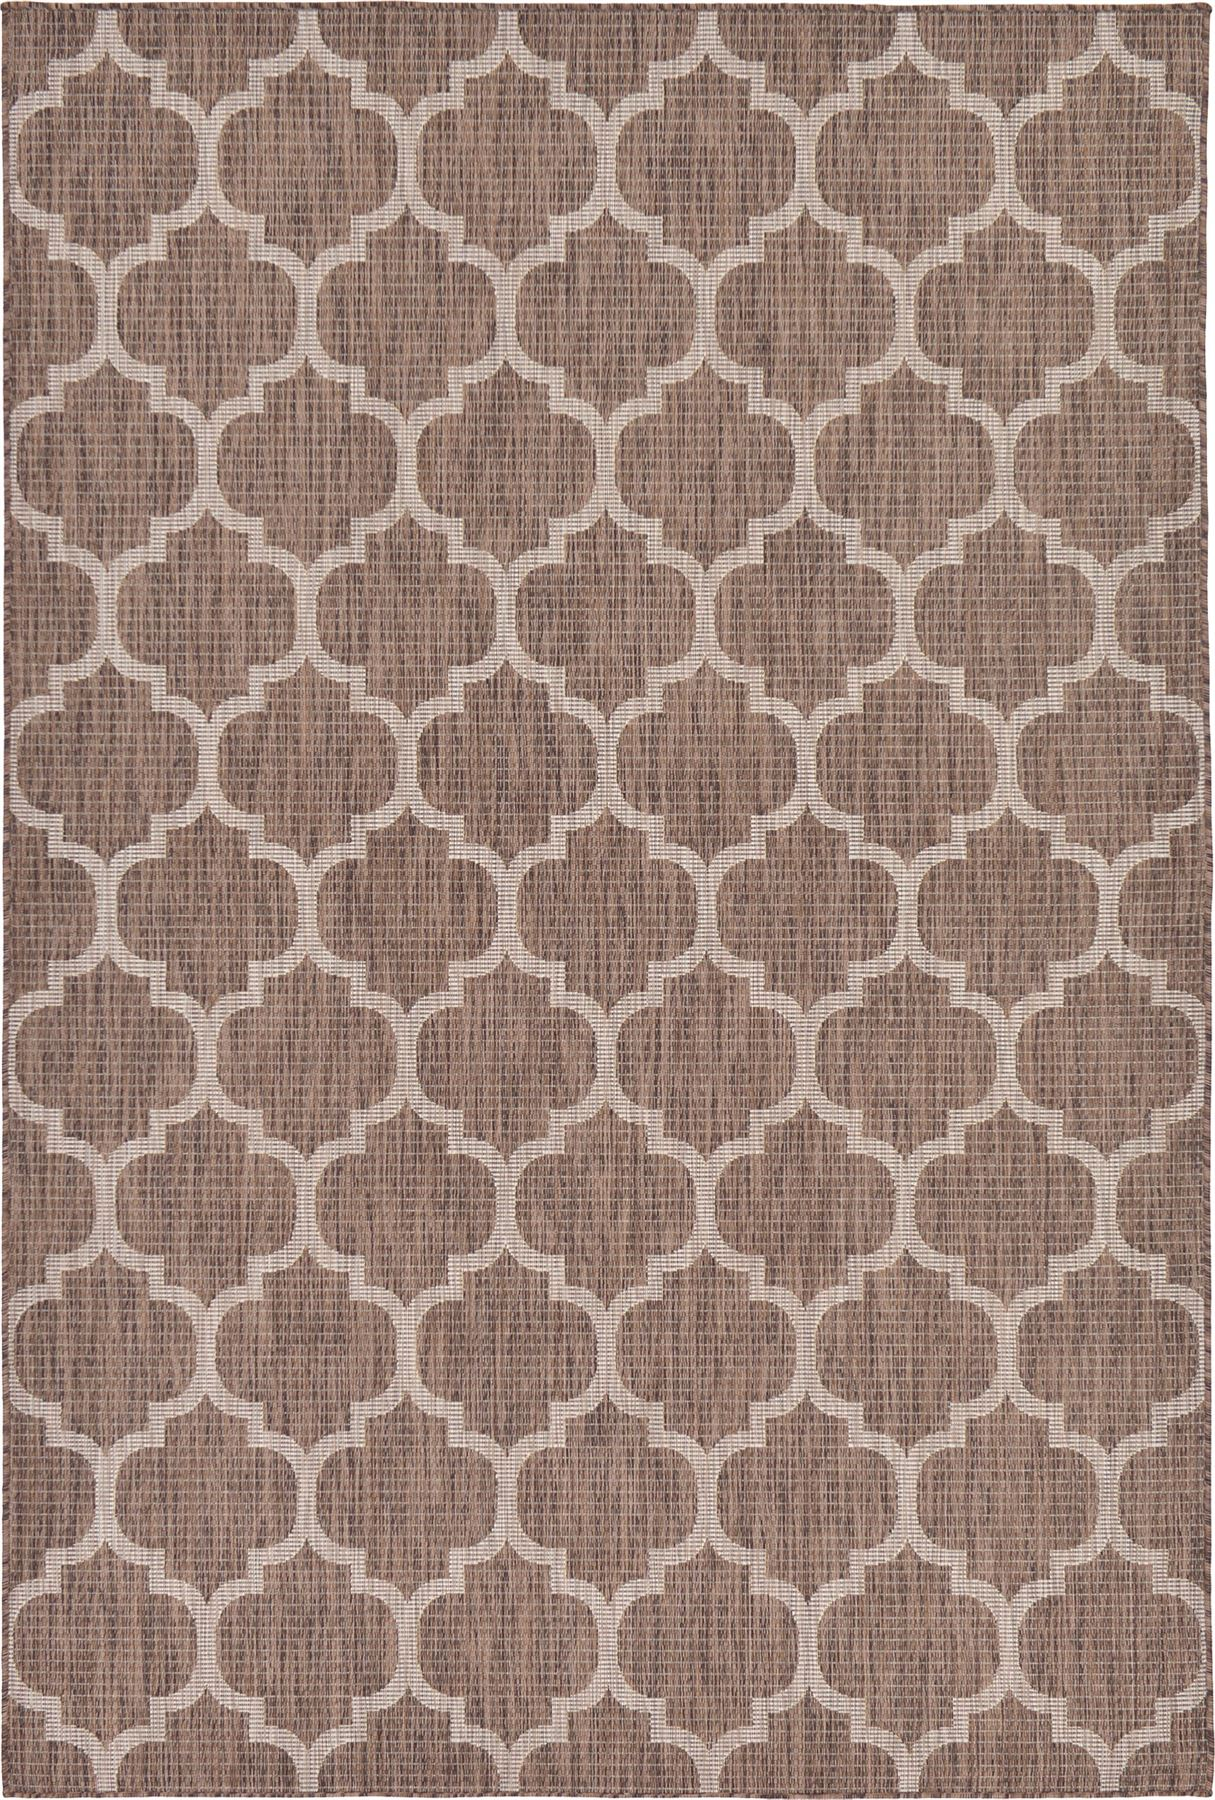 Modern Geometric Contemporary Moroccan Style Carpet Area Rug